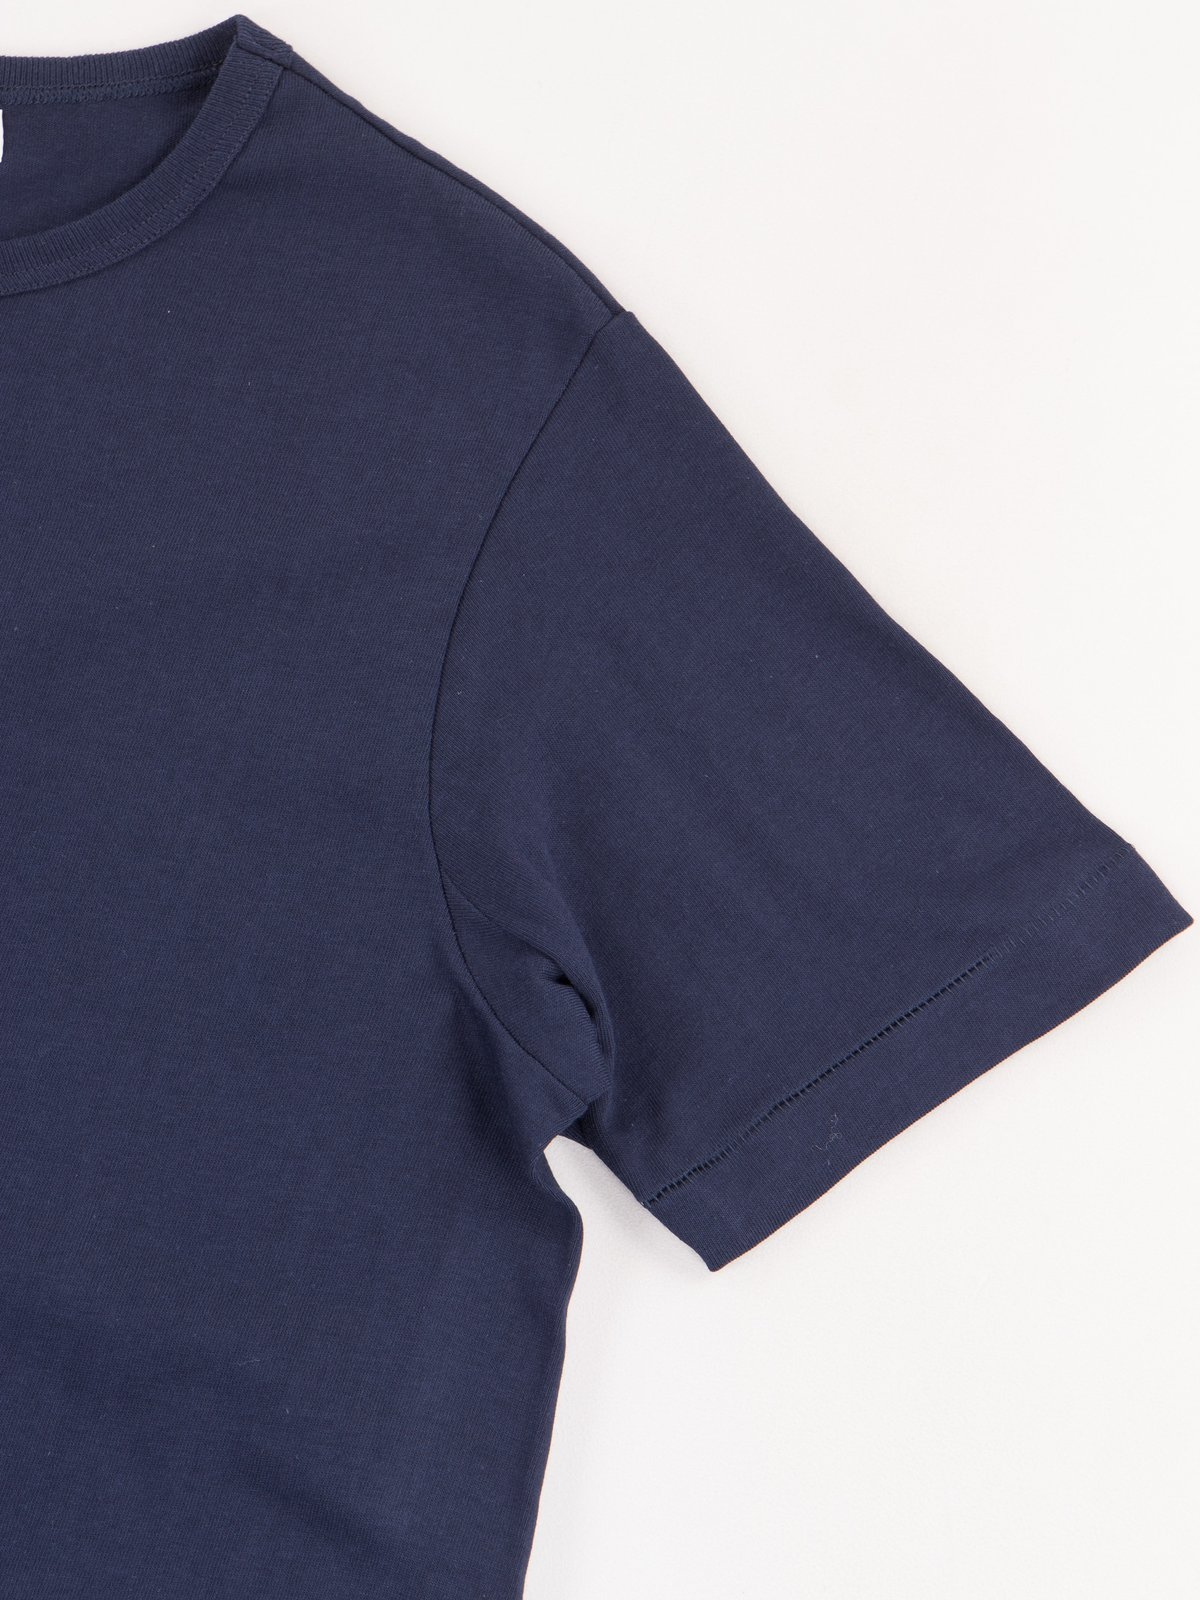 Ink Blue 215 Organic Cotton Army Shirt - Image 3